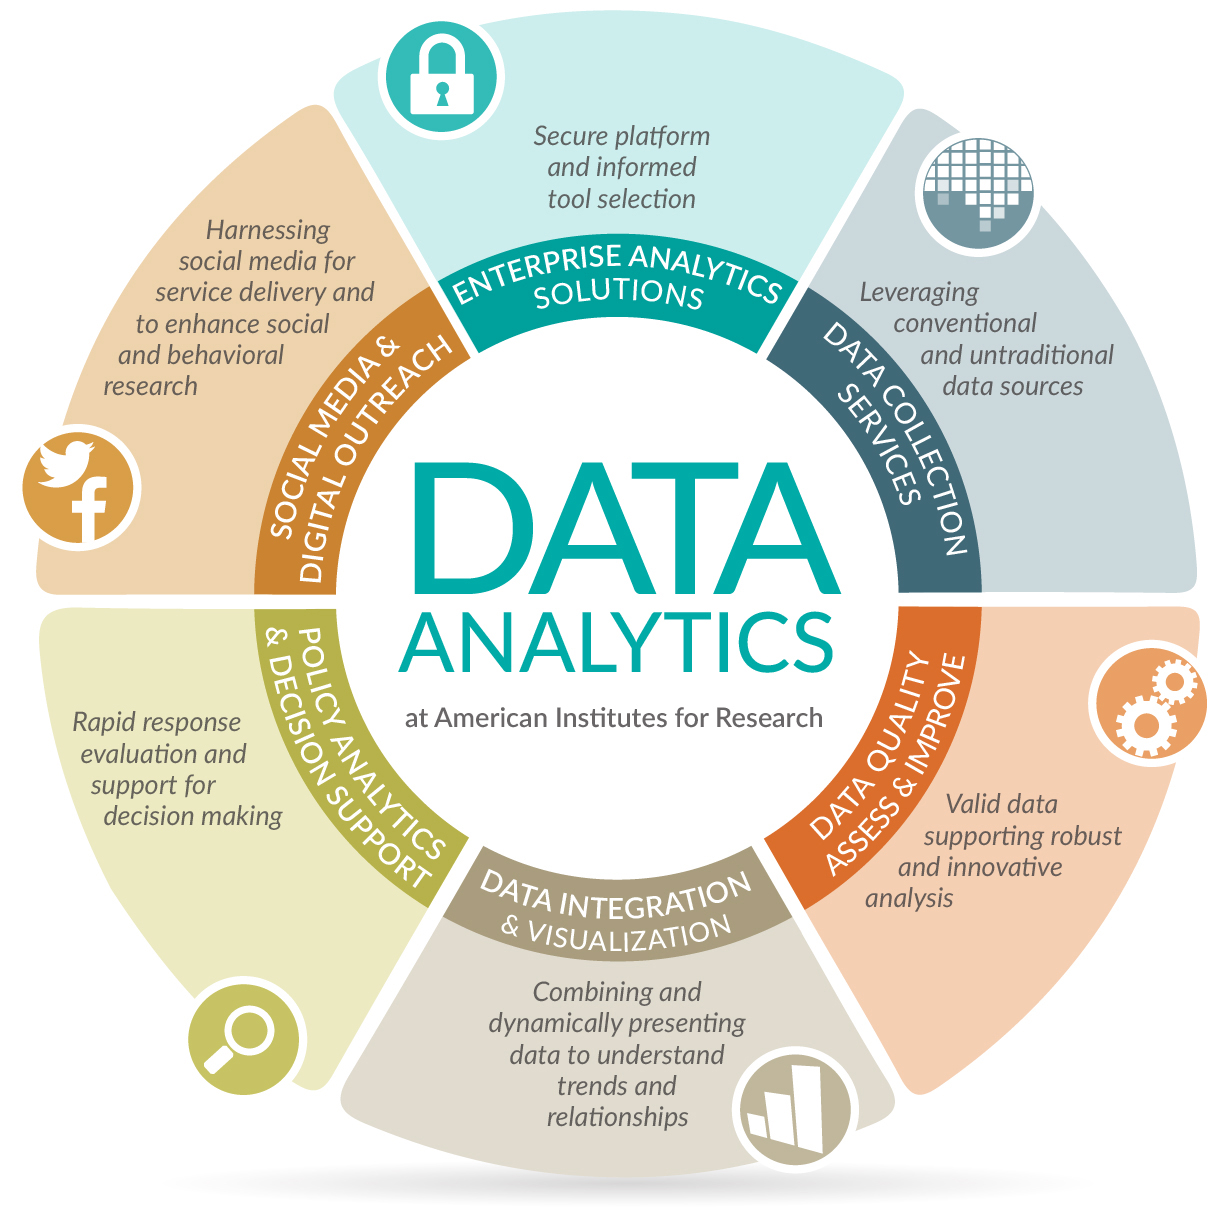 Graphic: Data Analytics at AIR